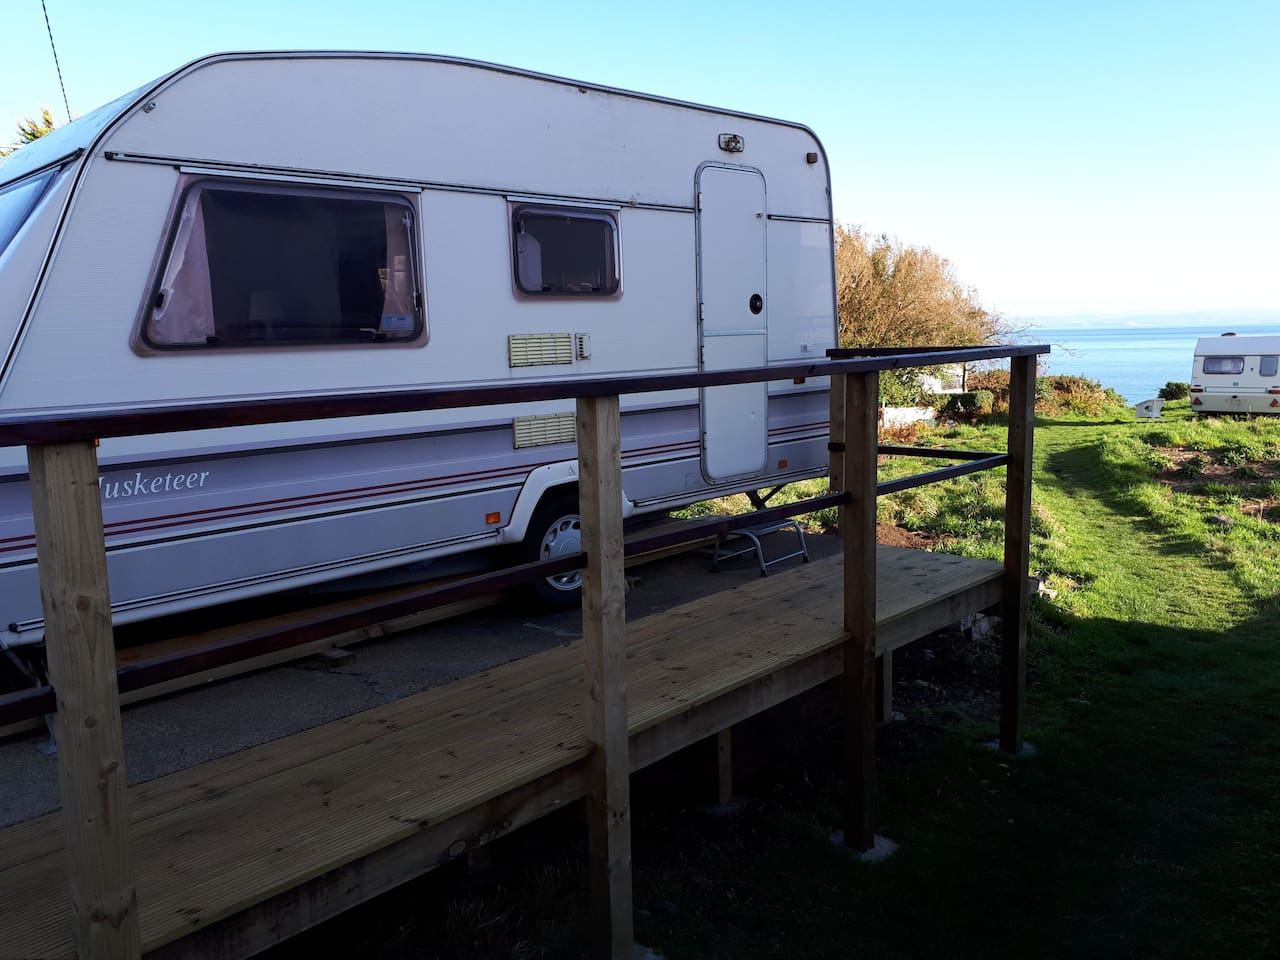 Selfcatering for 3/4. Gas fire and hob, electric lights Seaviews and easy access. 1 min from bus stop, 2 mins walk to silversands beach.